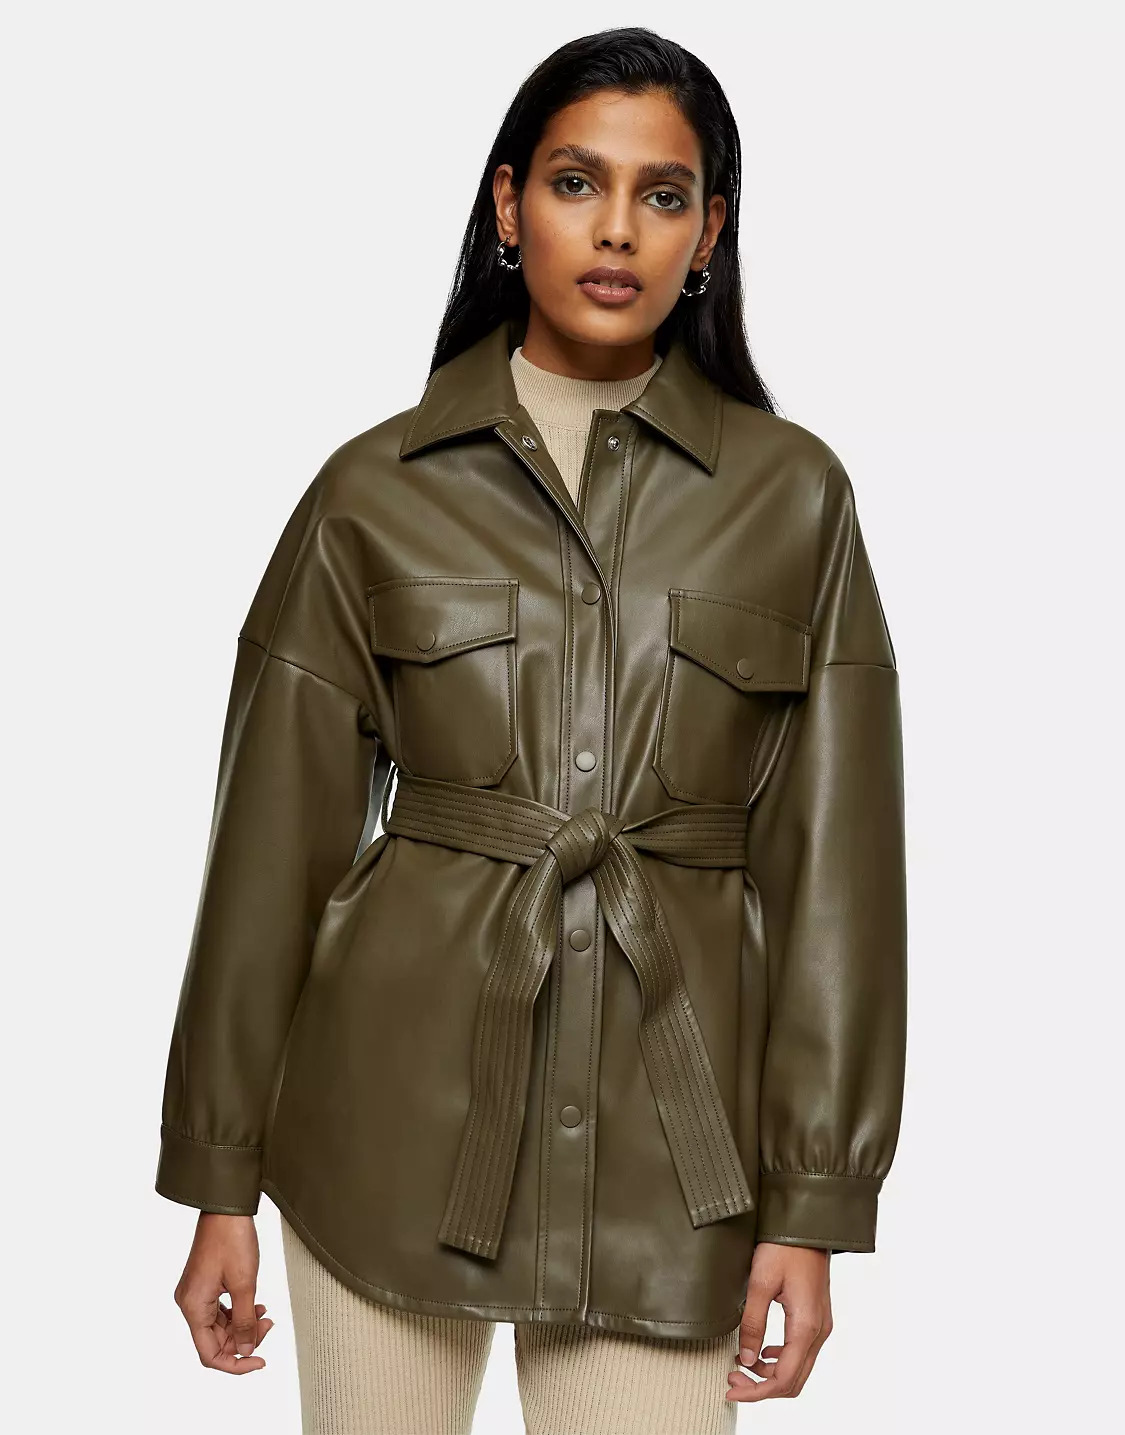 Faux leather belted jacket in khaki, Topshop, £49.99